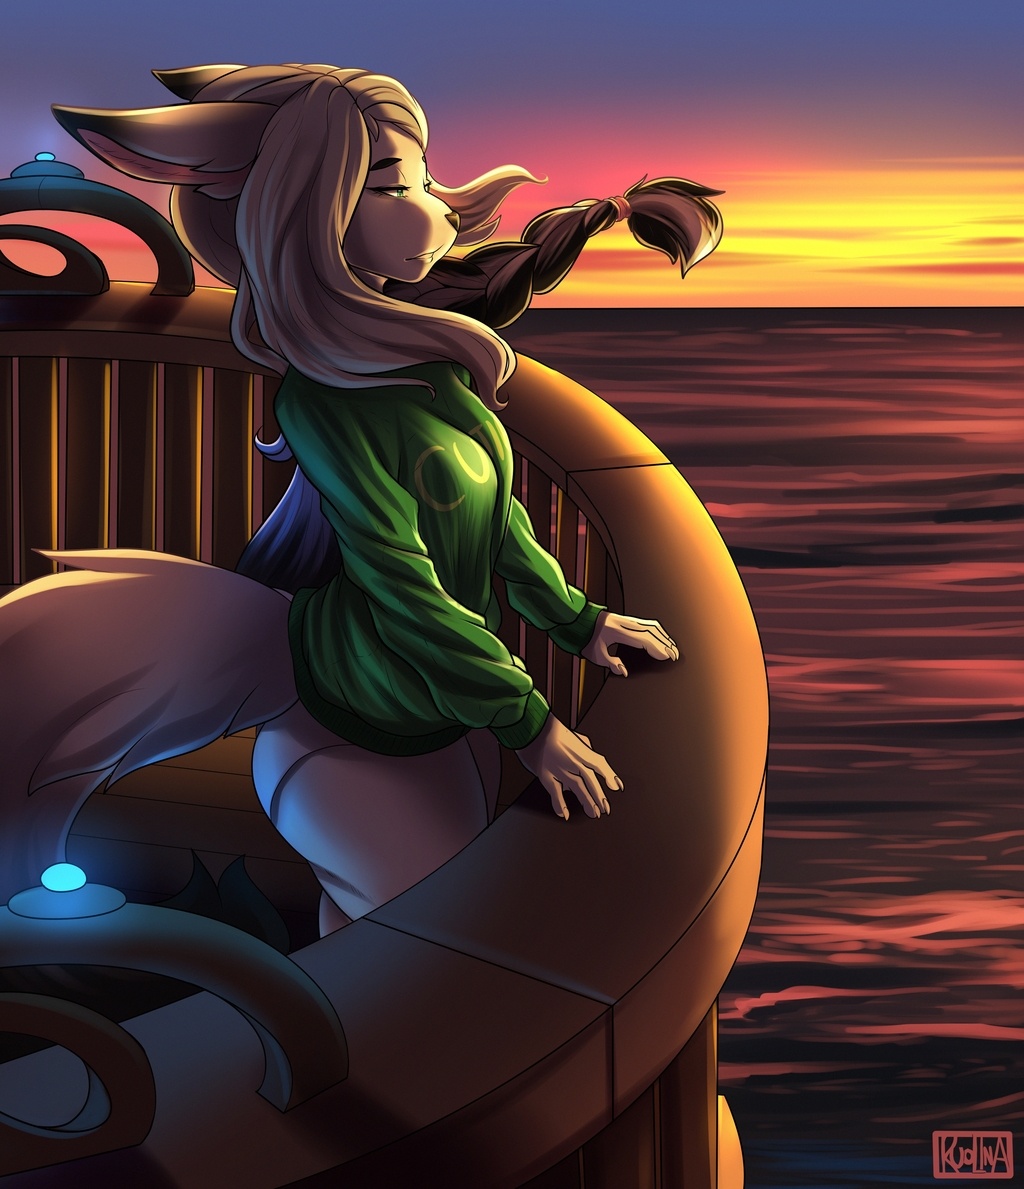 The Sea is Calling - By Ruolina